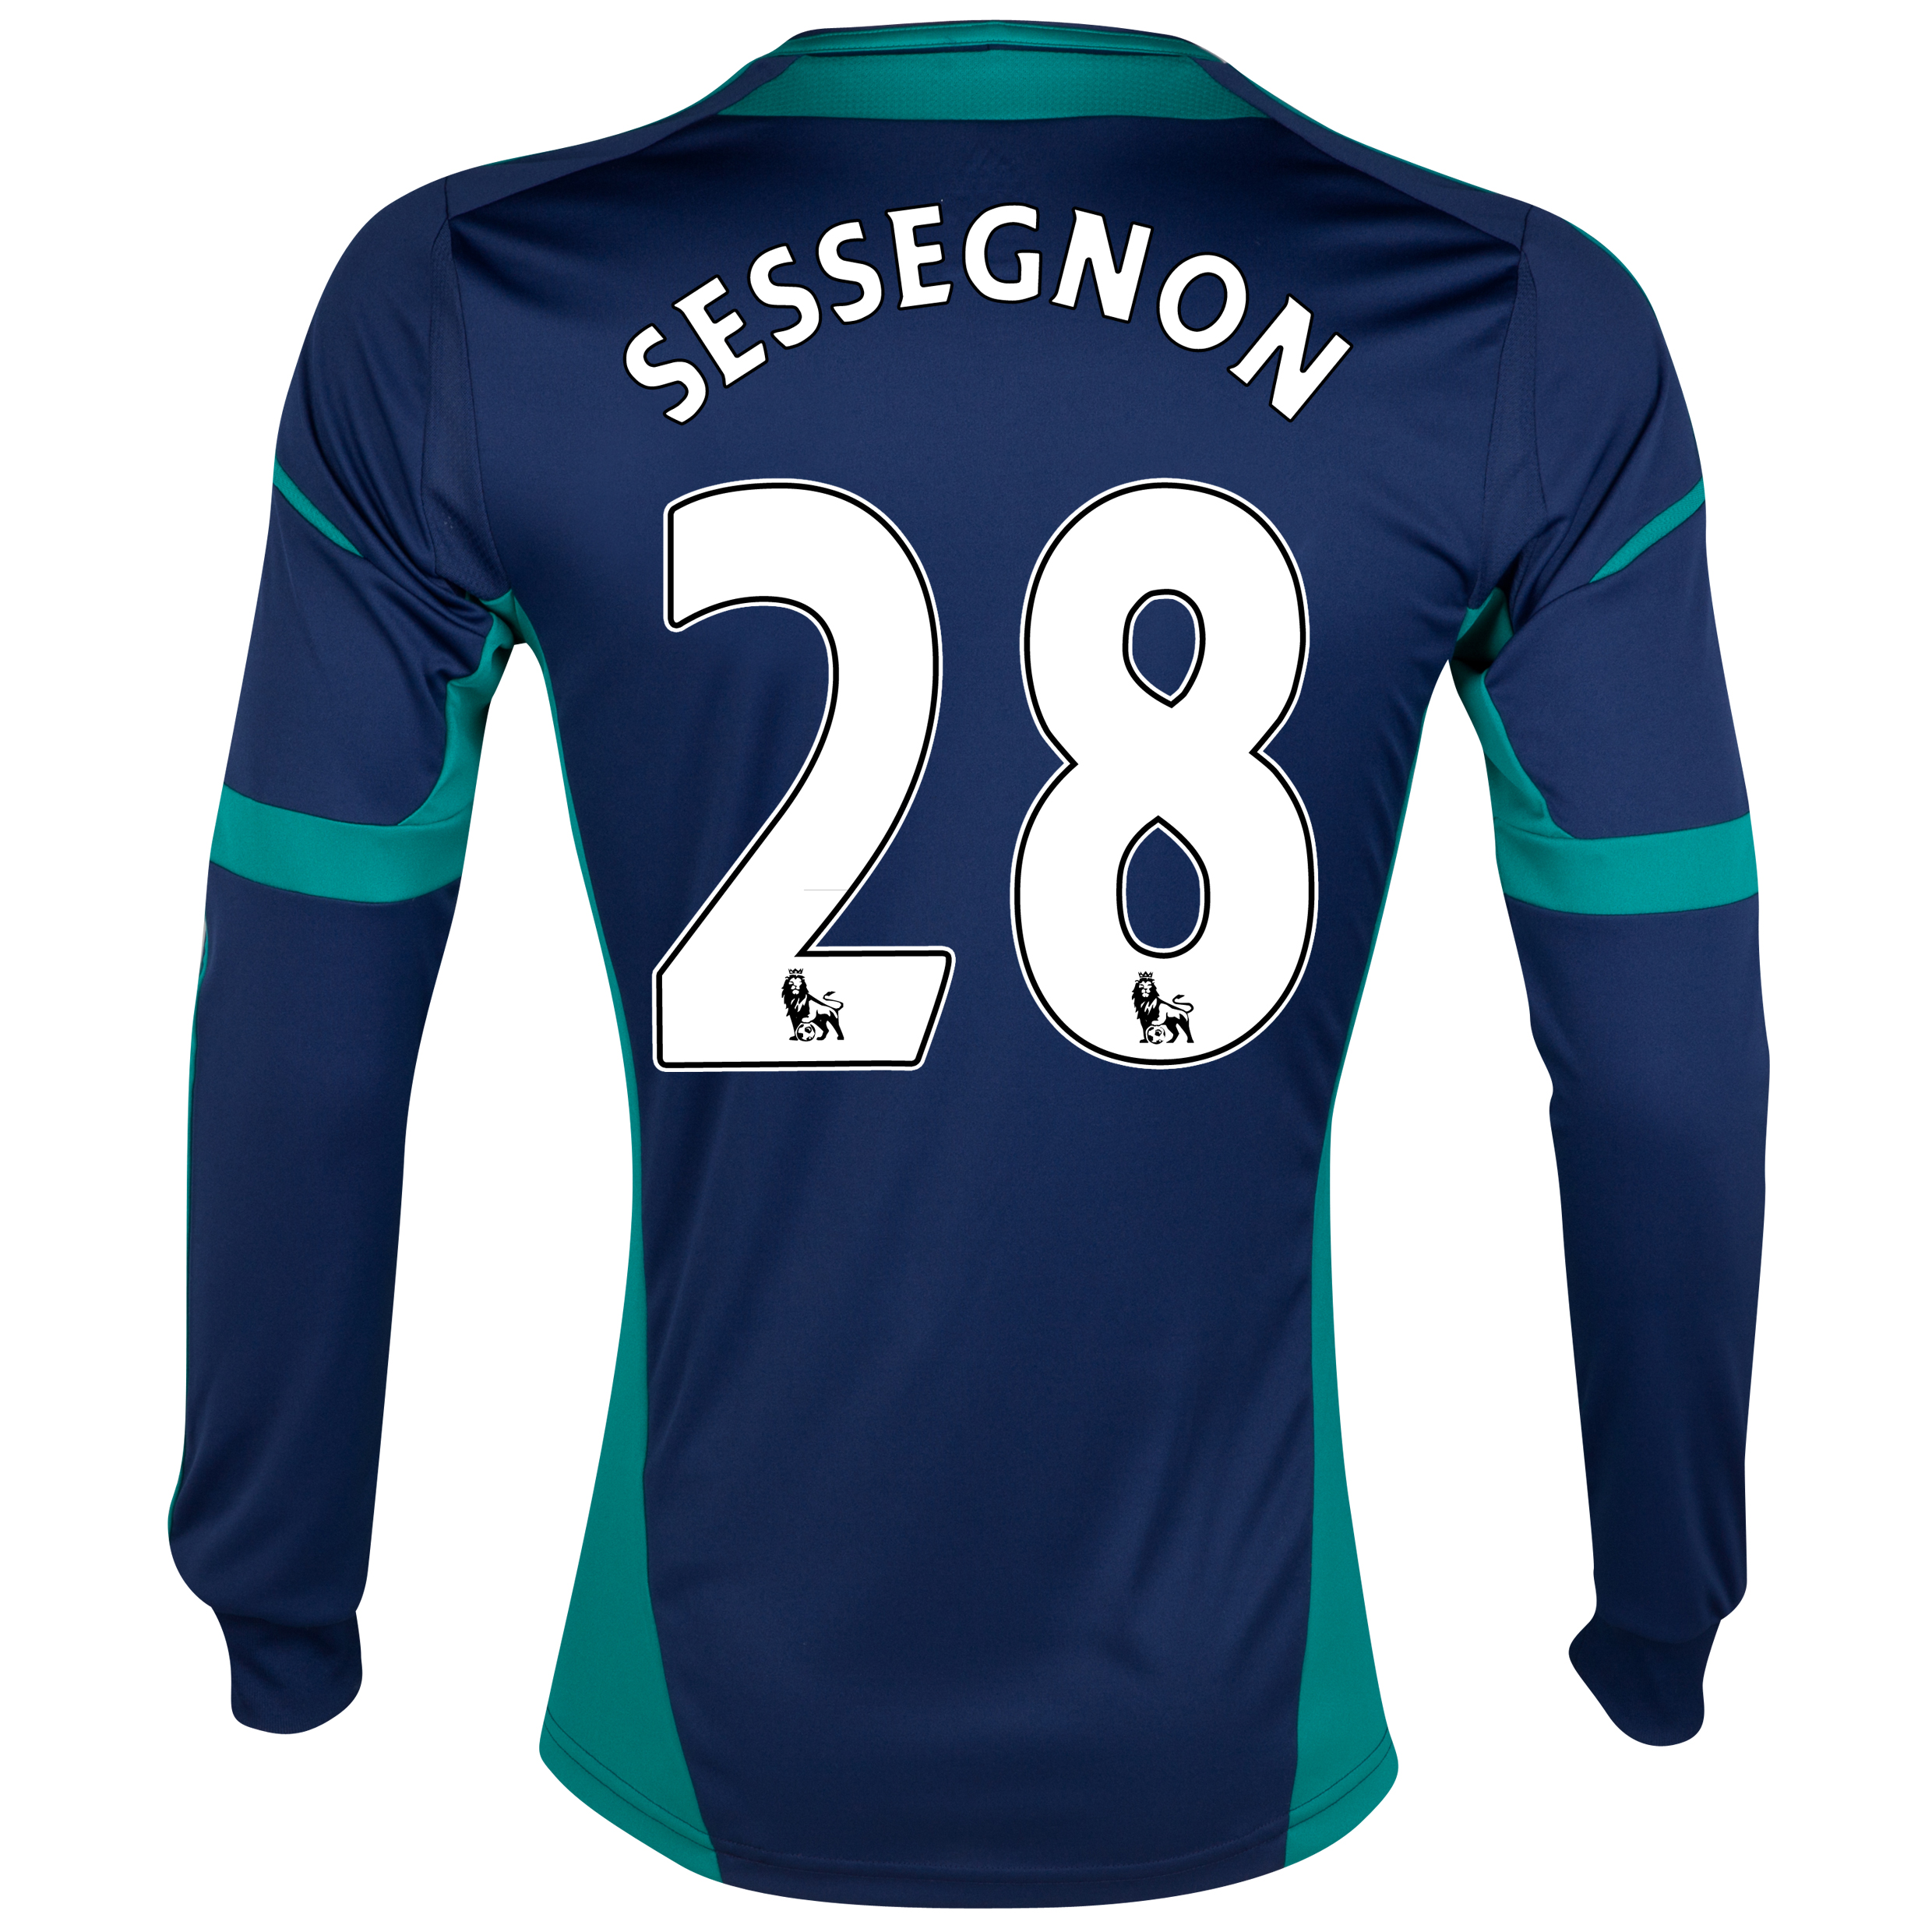 Sunderland Away Shirt 2012/13 - Long Sleeved with Sessegnon 28 printing